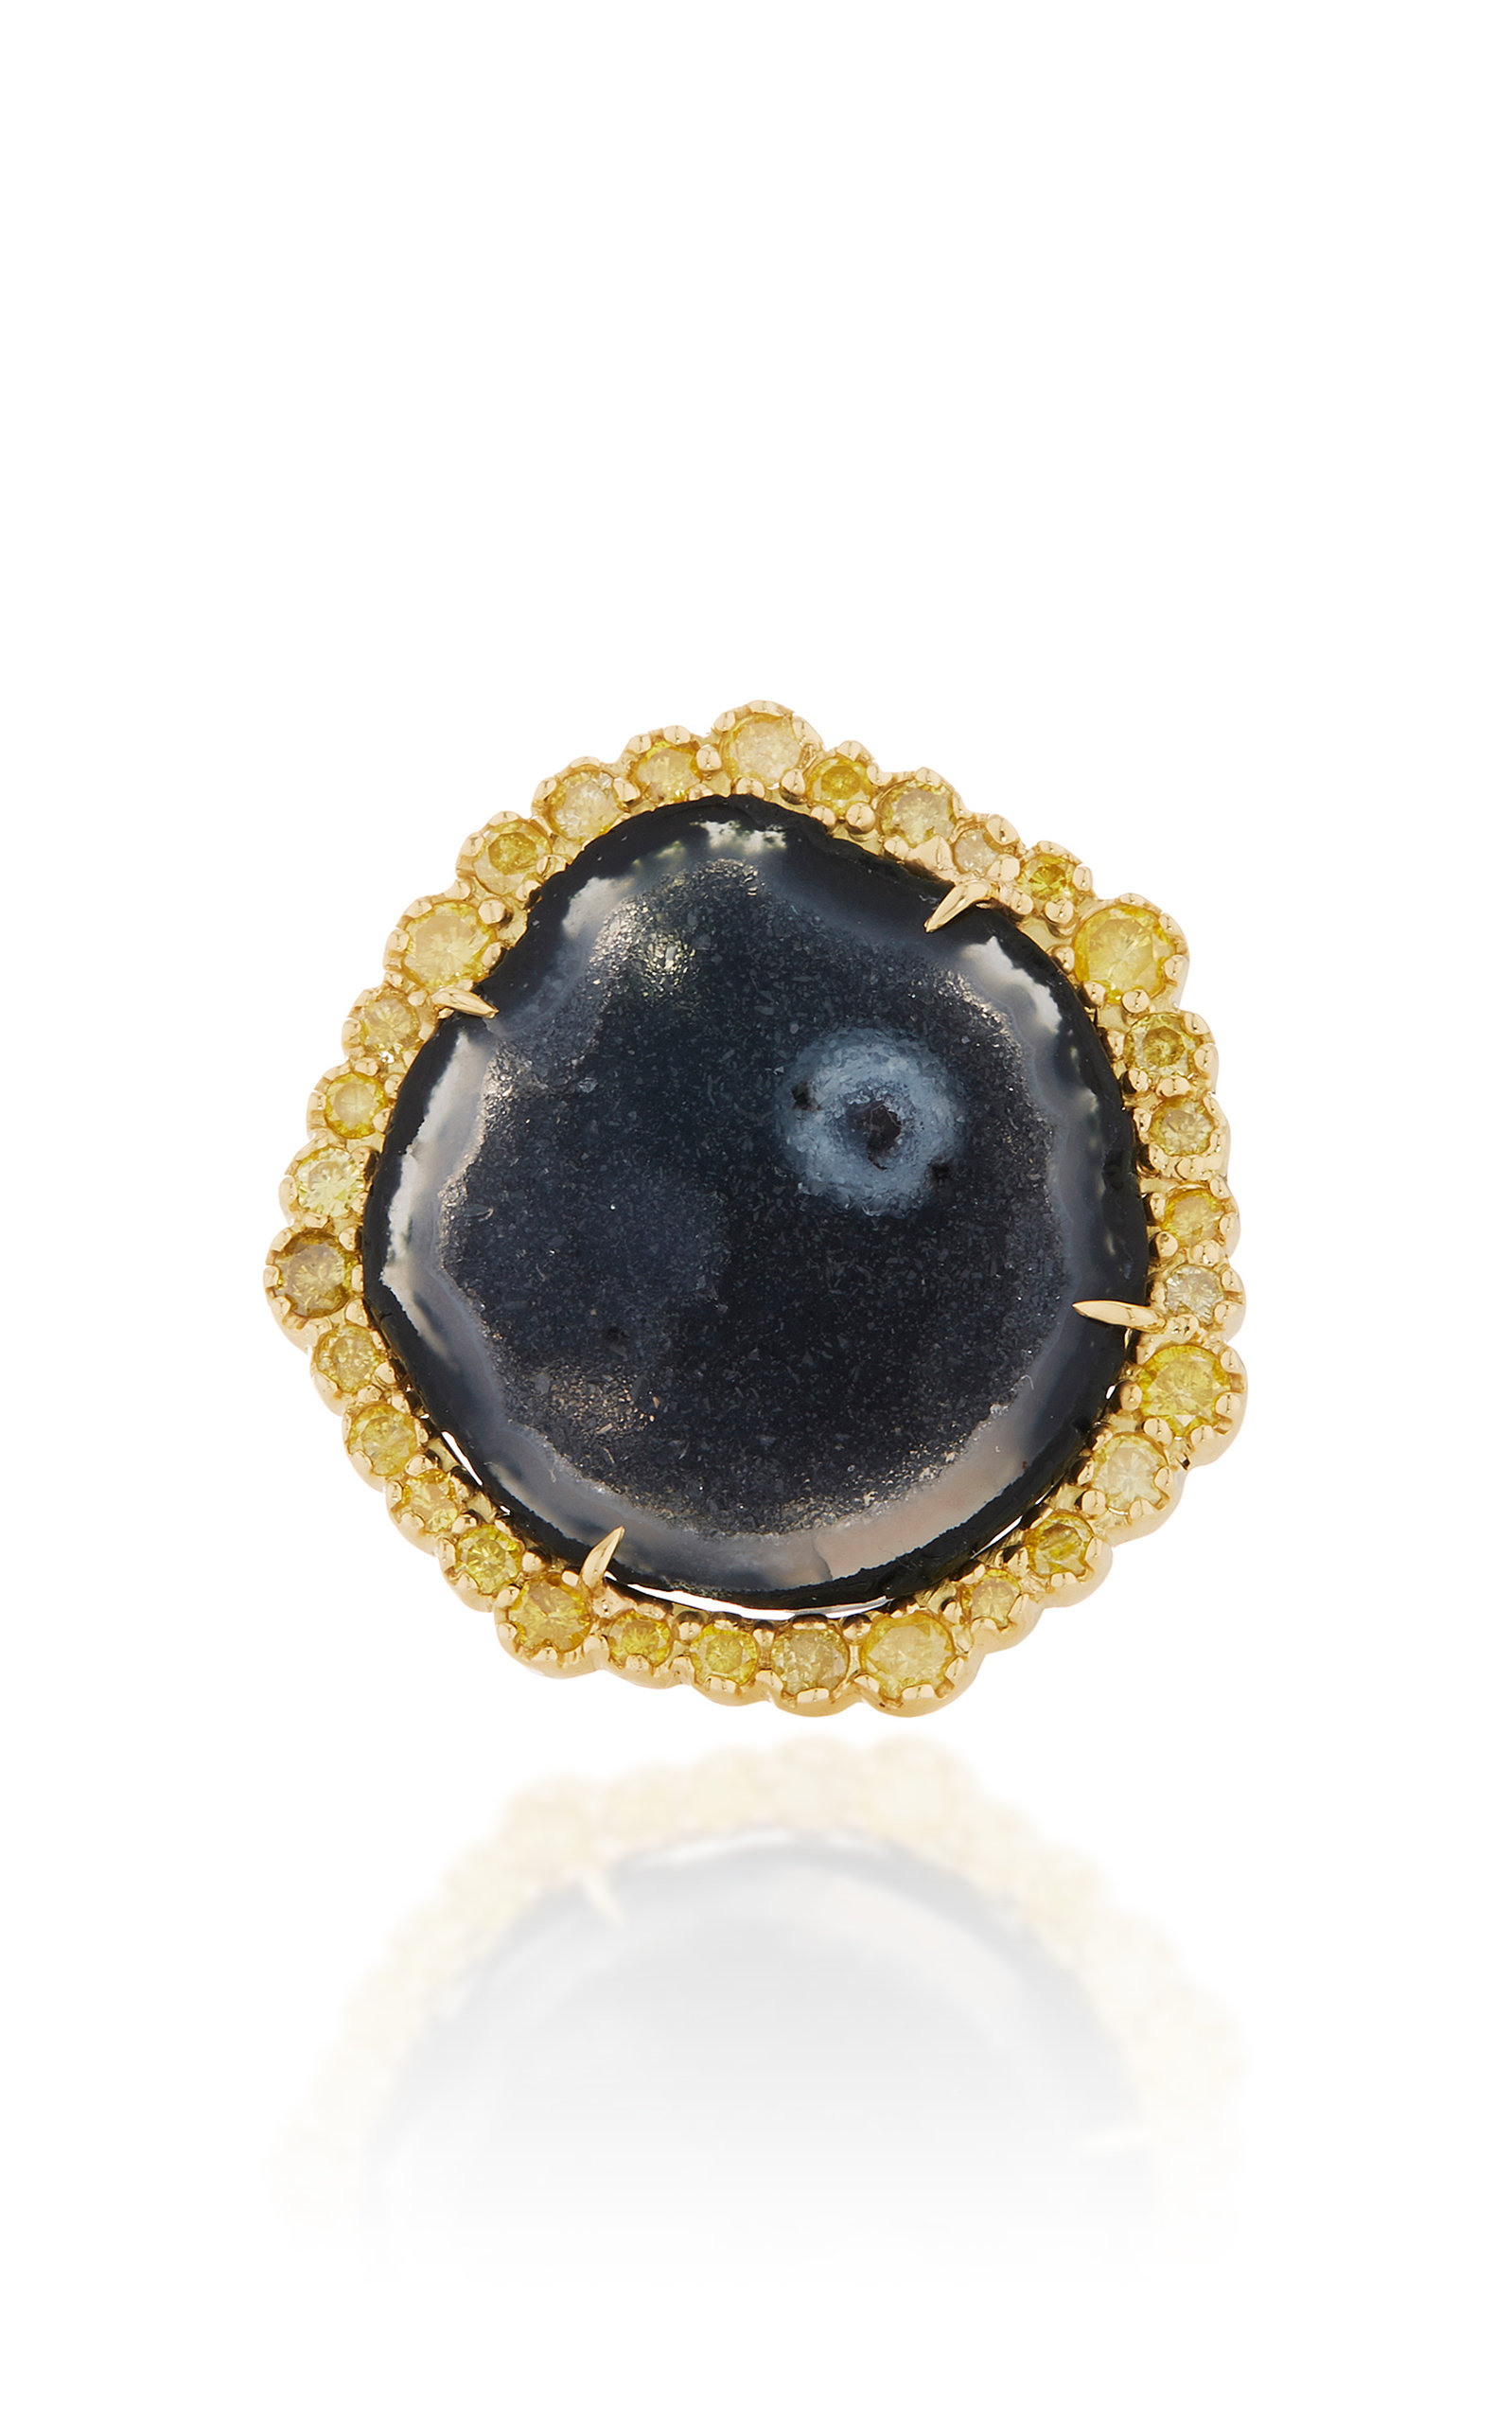 KIMBERLY MCDONALD ONE-OF-A-KIND GEODE RING WITH YELLOW DIAMONDS SET IN 18K YELLOW GOLD